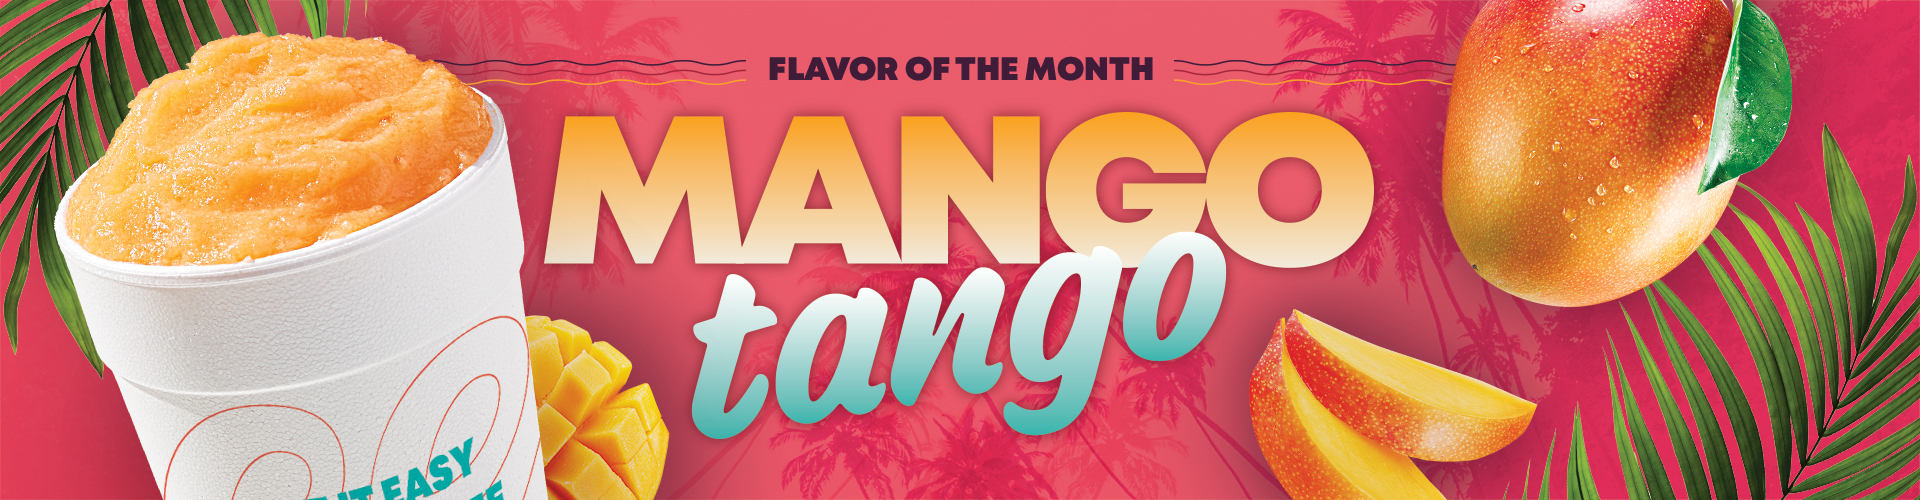 Mango Tango - May Flavor of the Month